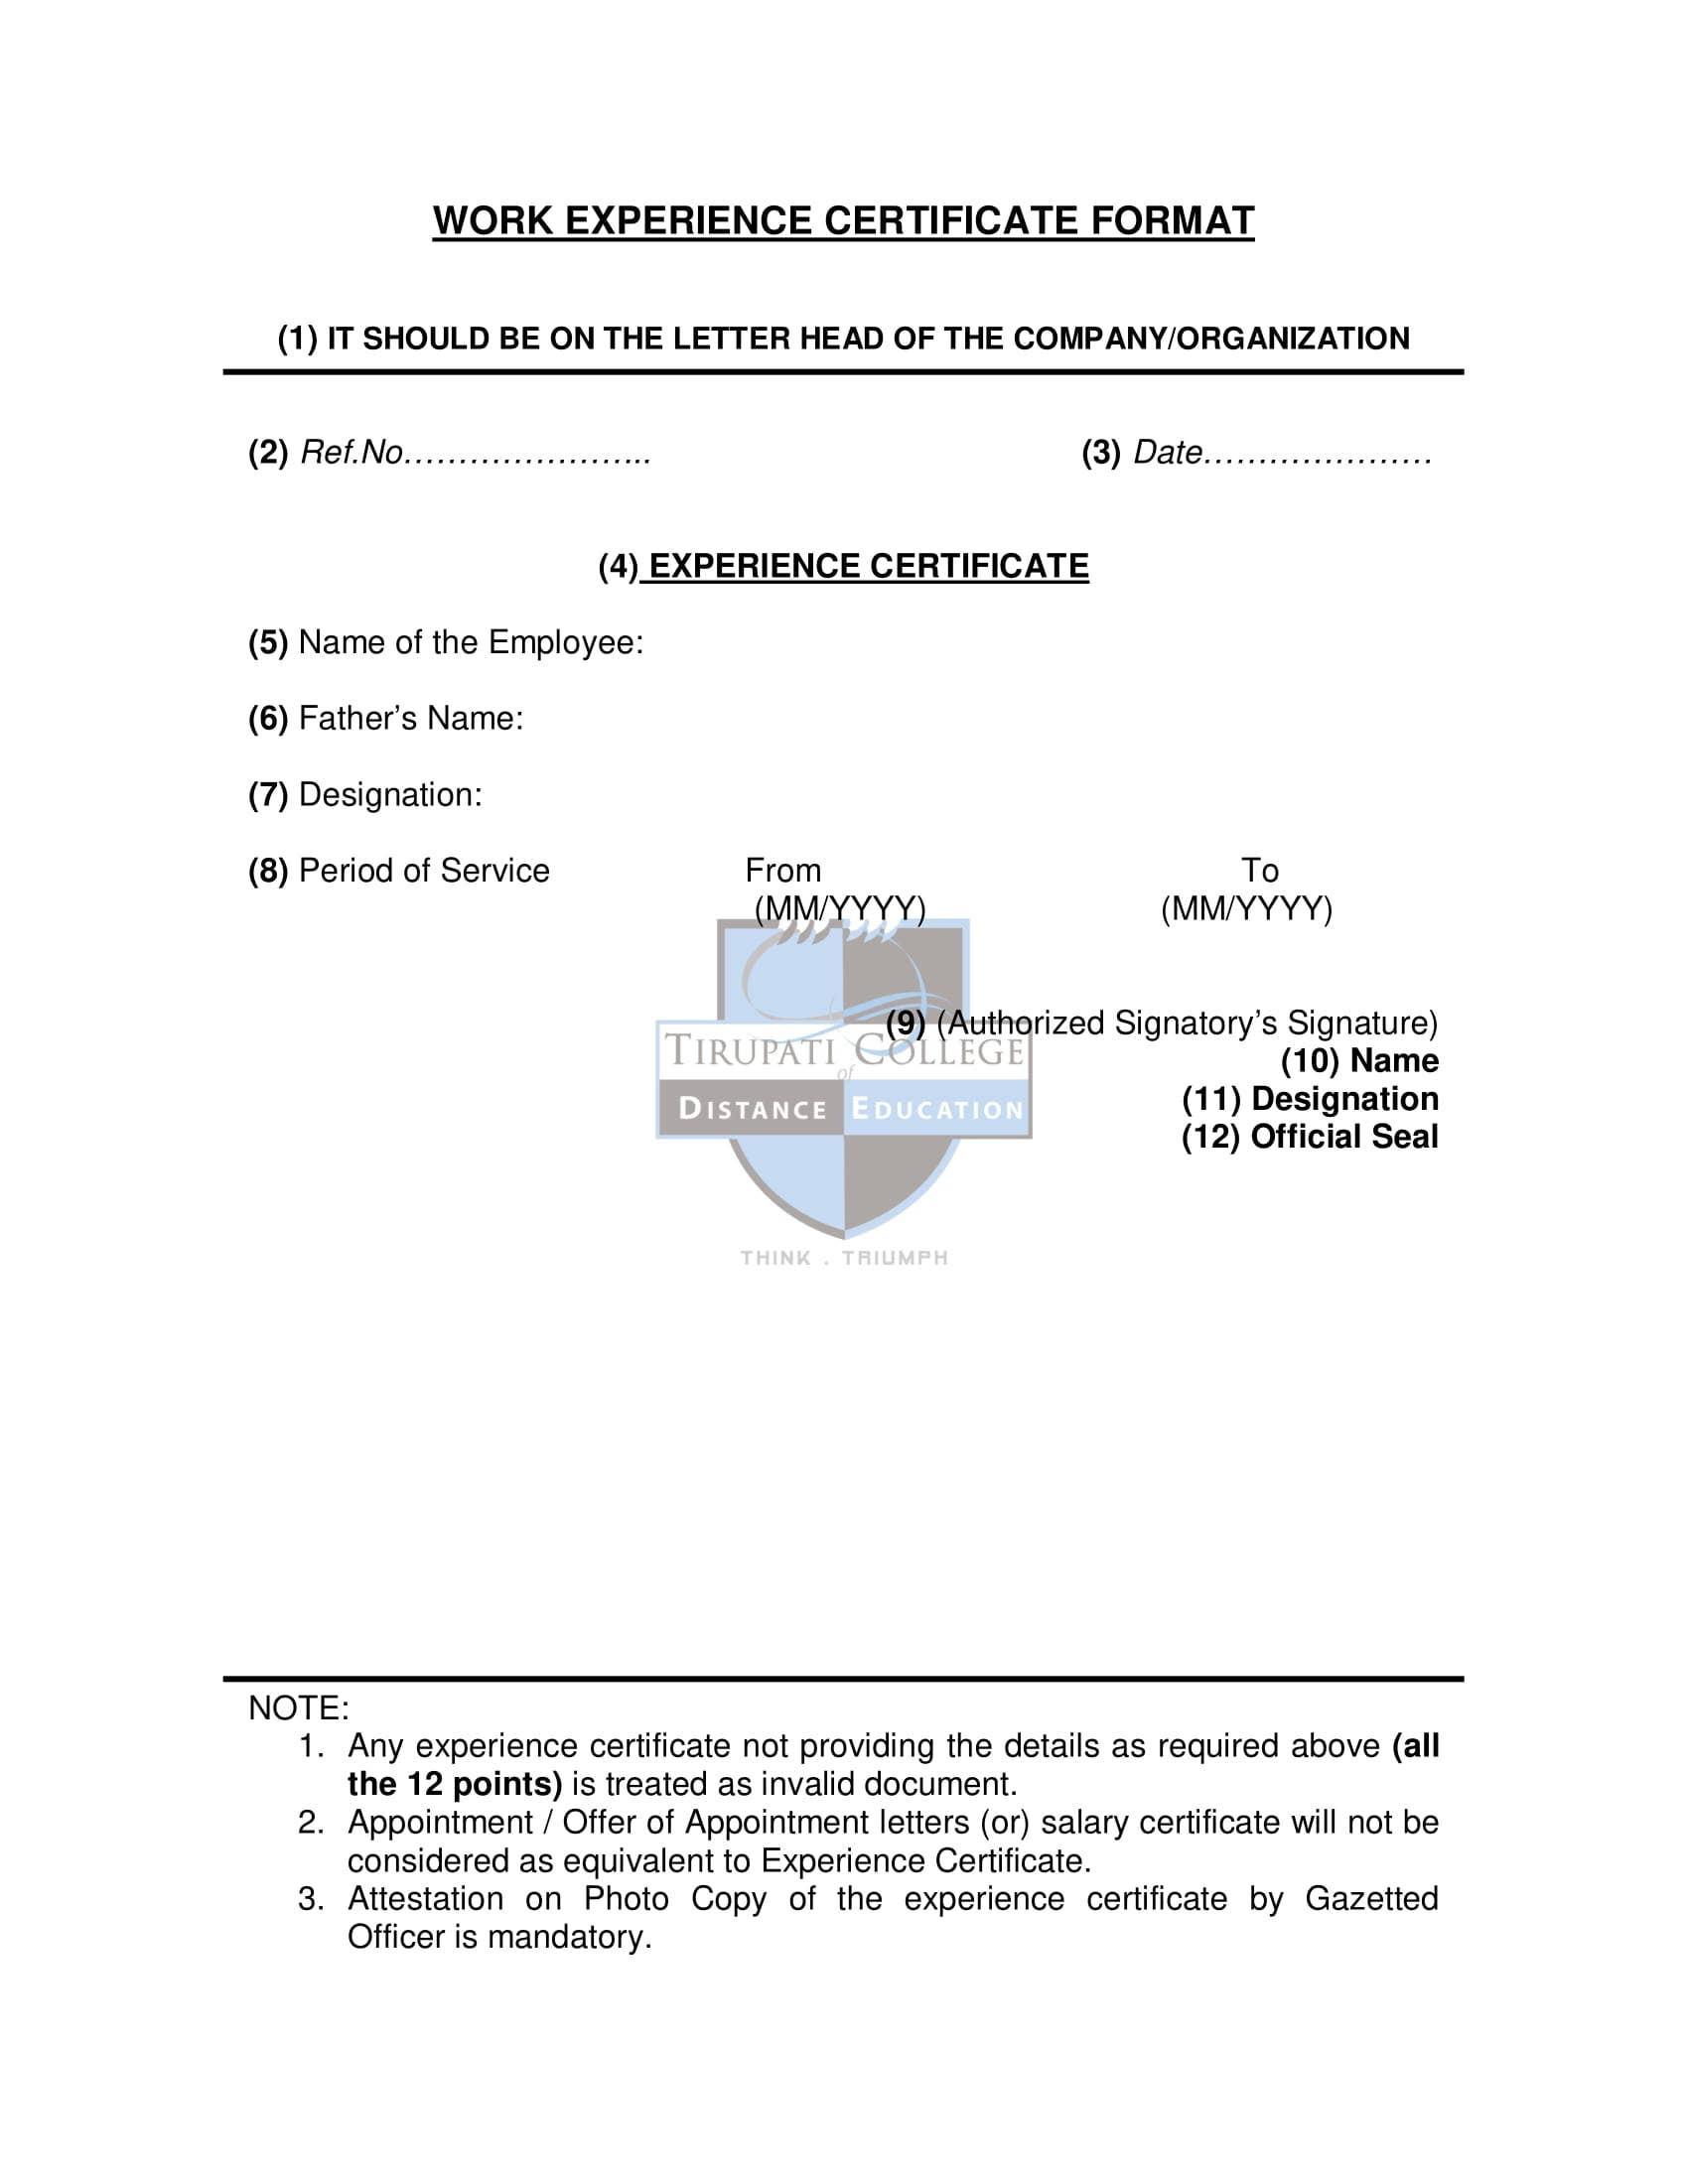 work experience certificate format 1